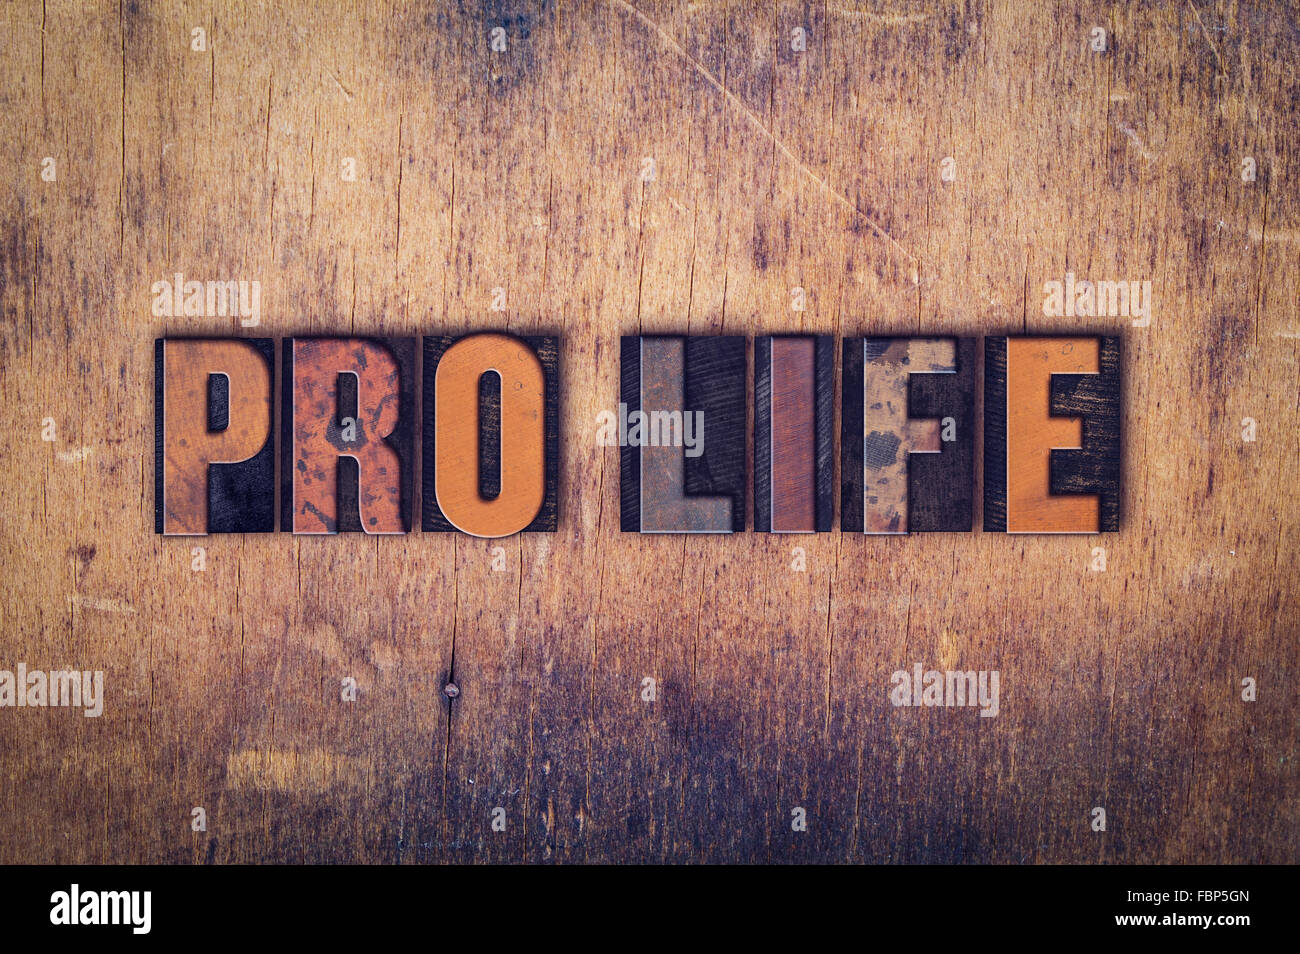 """The word """"Pro Life"""" written in dirty vintage letterpress type on a aged wooden background. Stock Photo"""